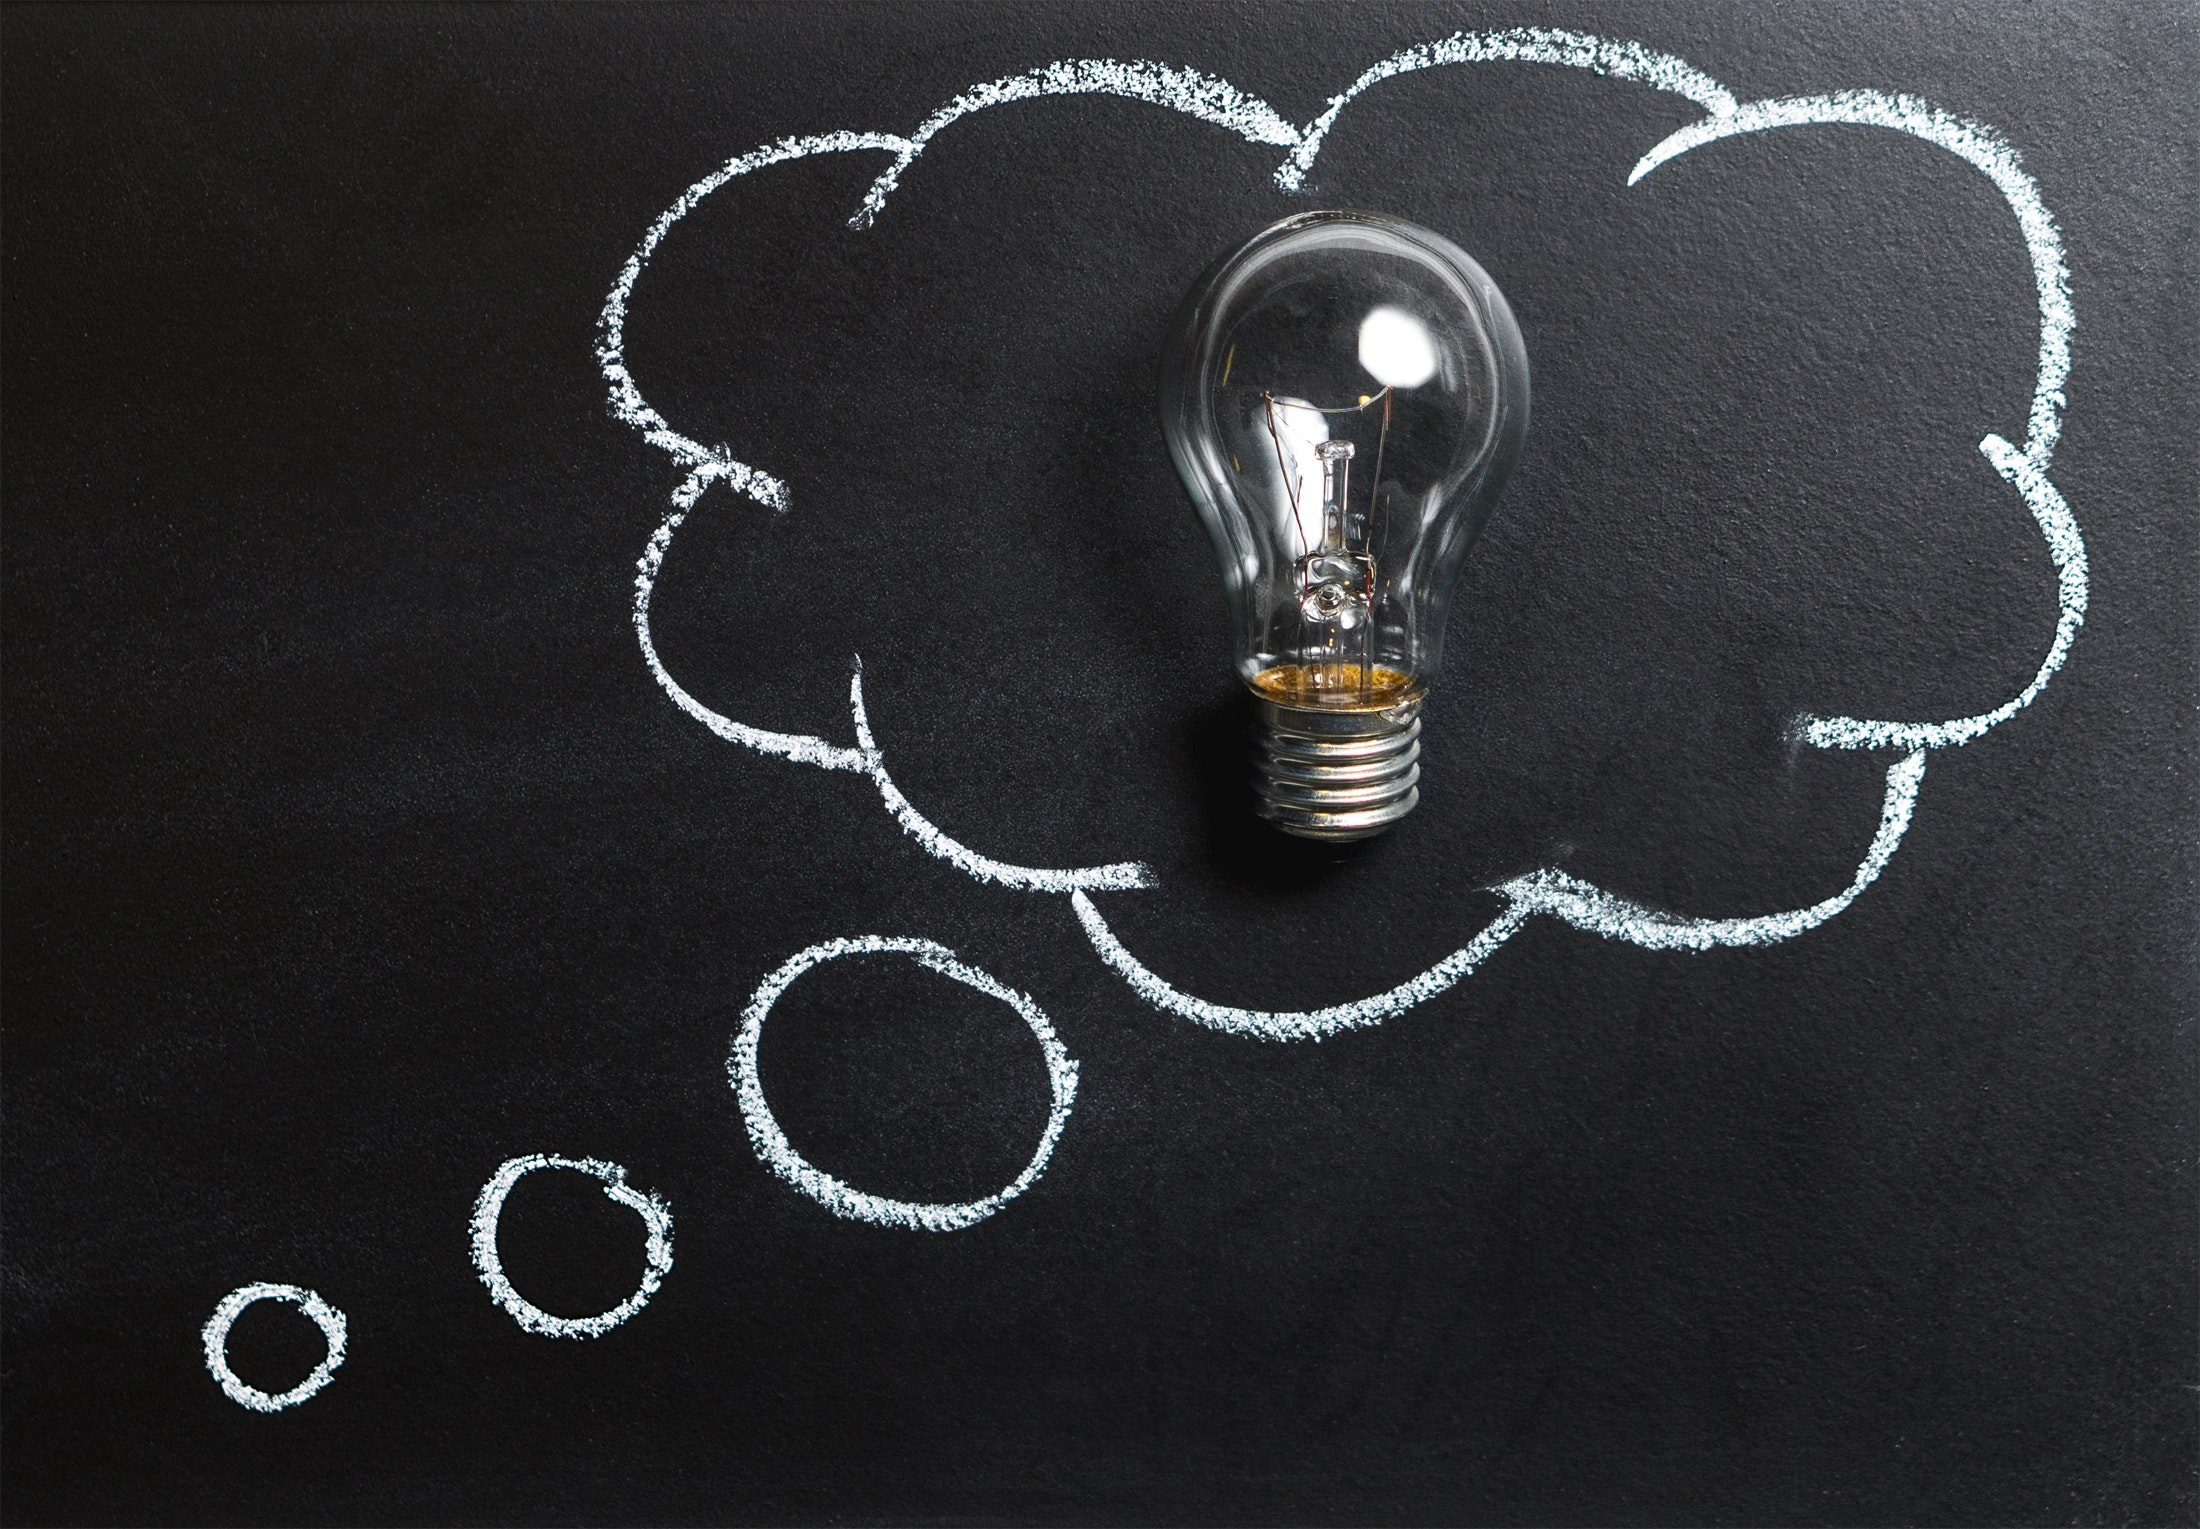 set off light bulbs in the mind of your audience